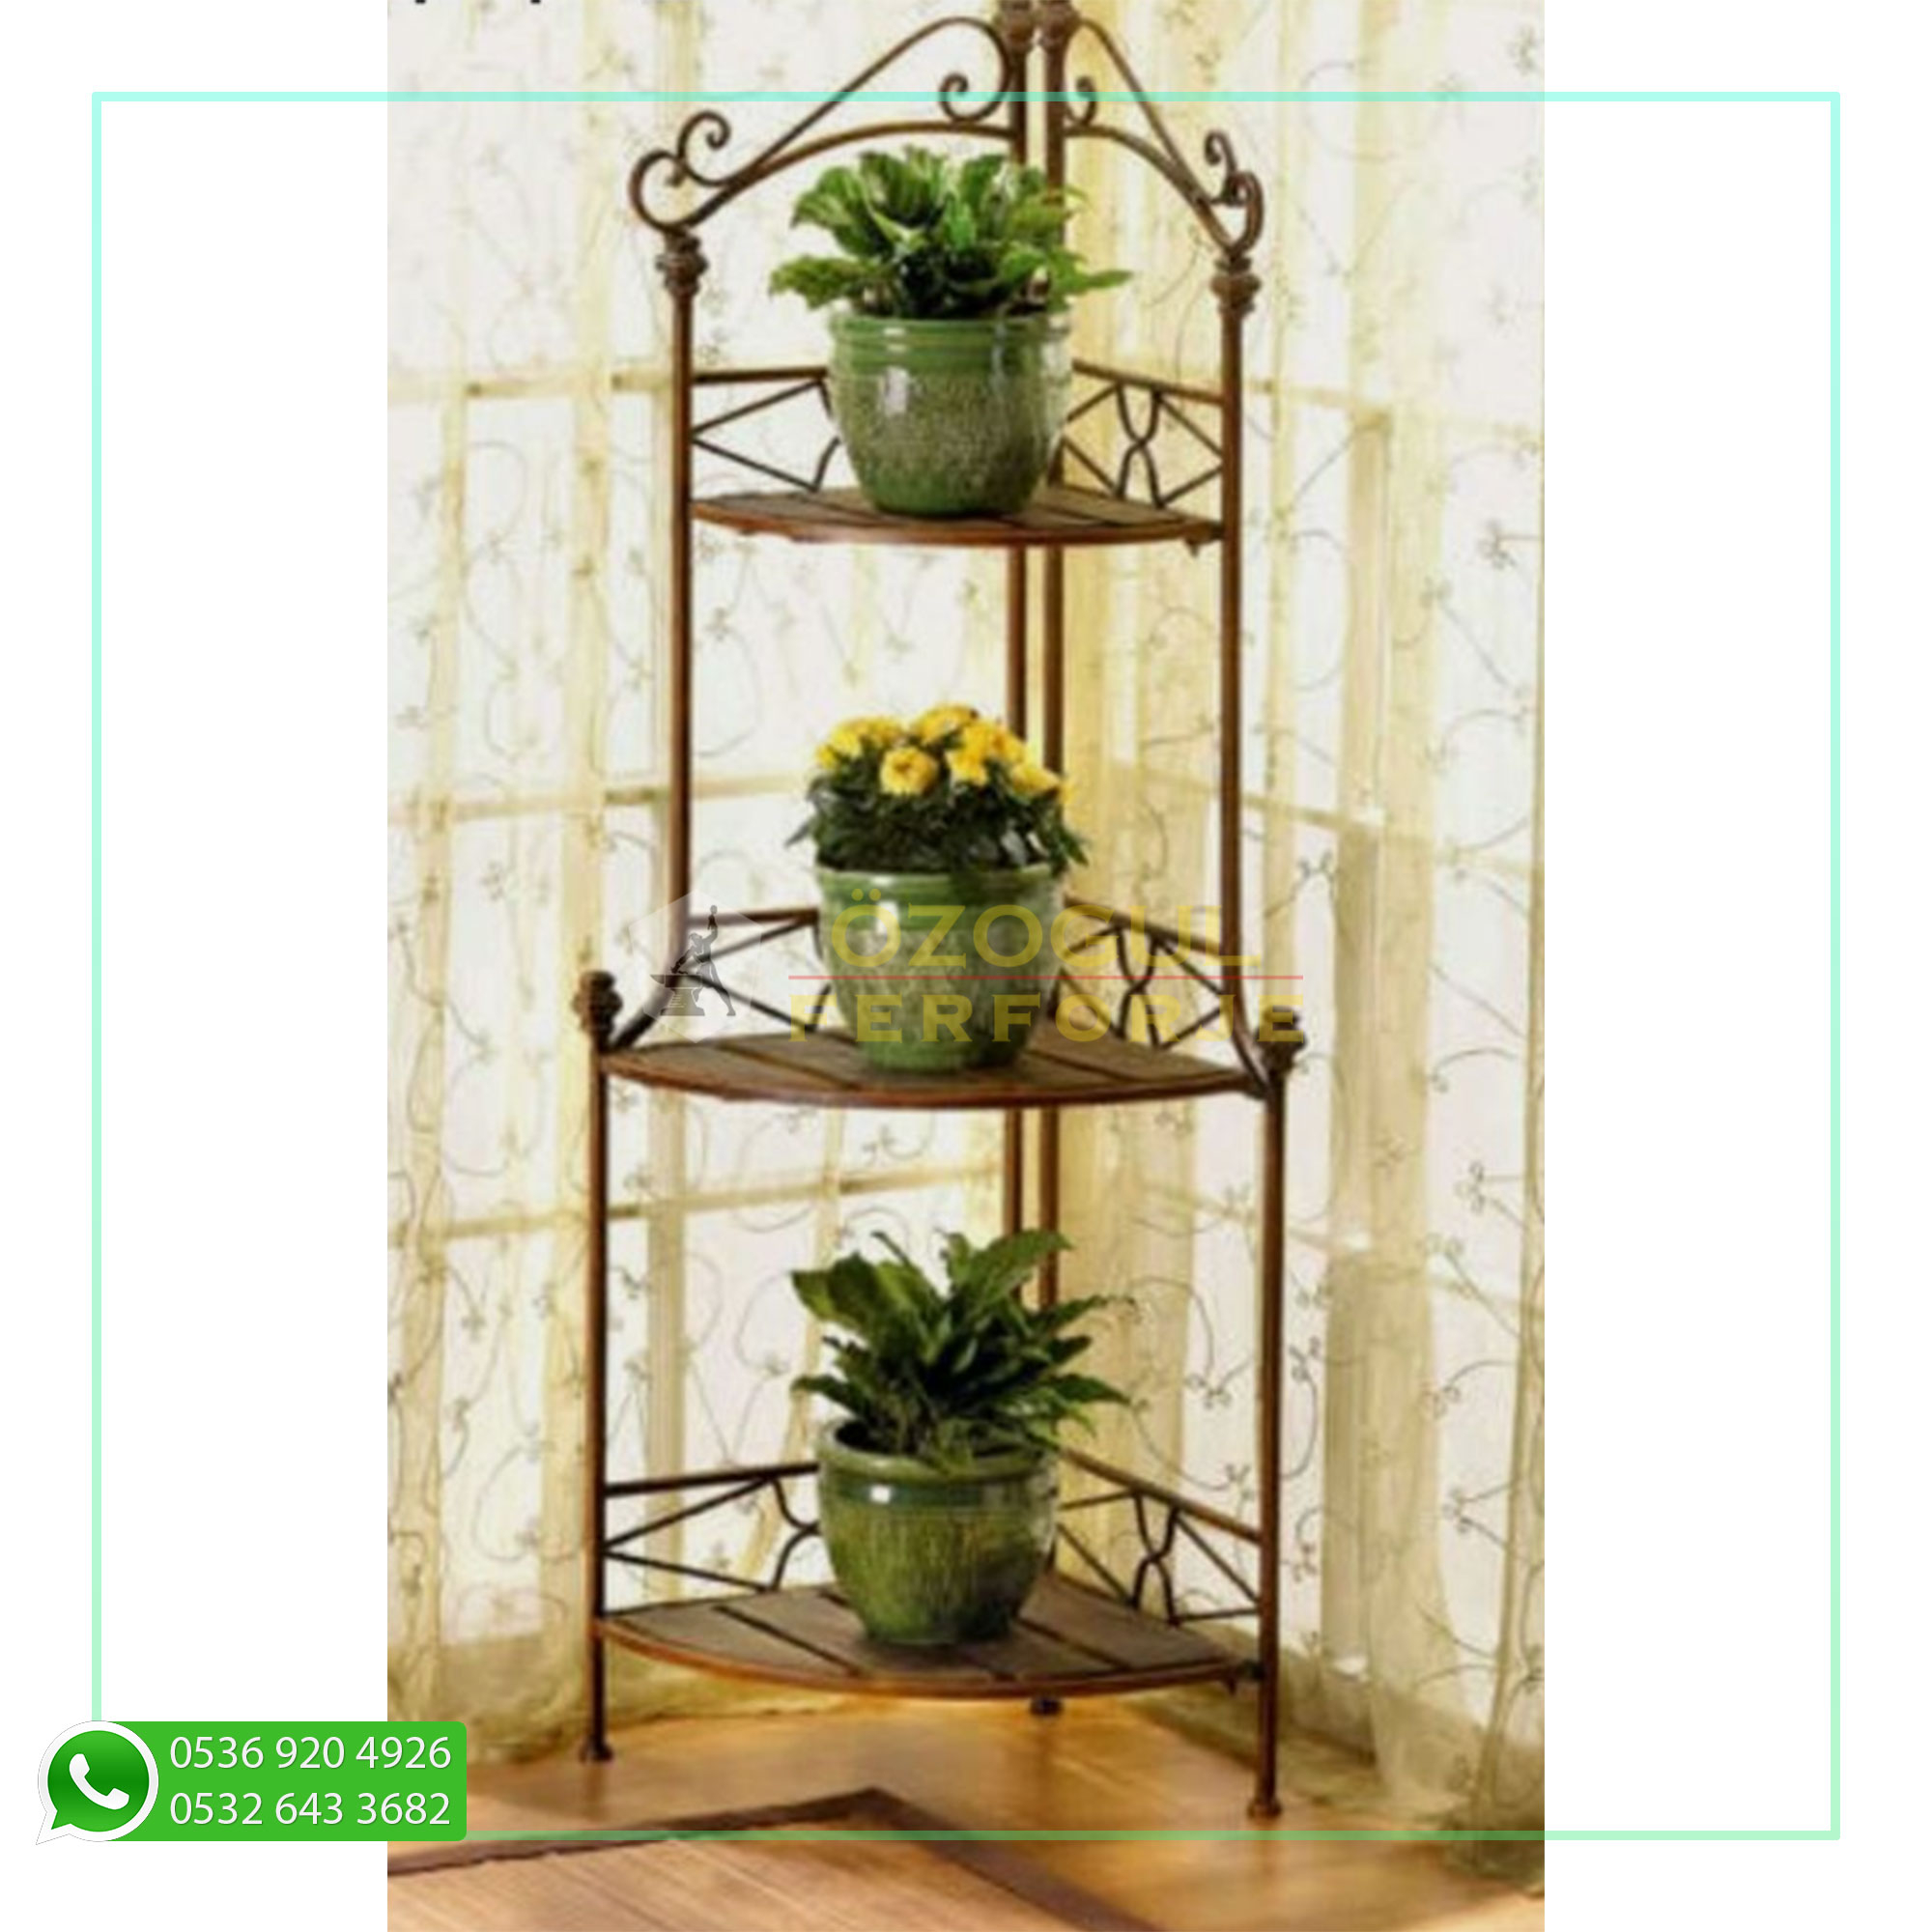 Rustic Corner Kitchen Bakers Rack Plant Stand Display